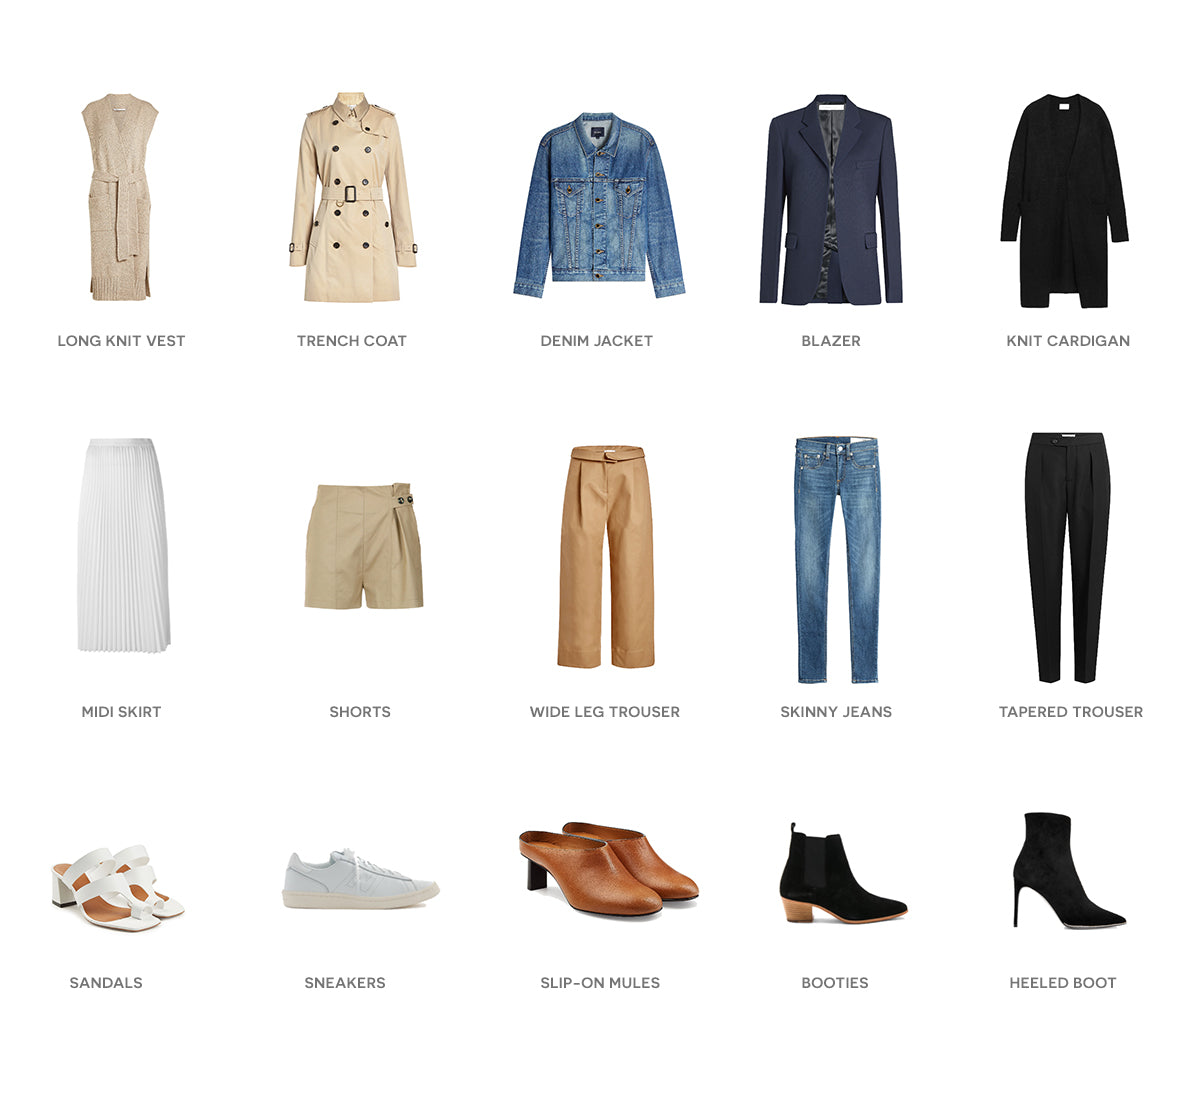 Flay lay of blue, white, khaki and denim outfit choices